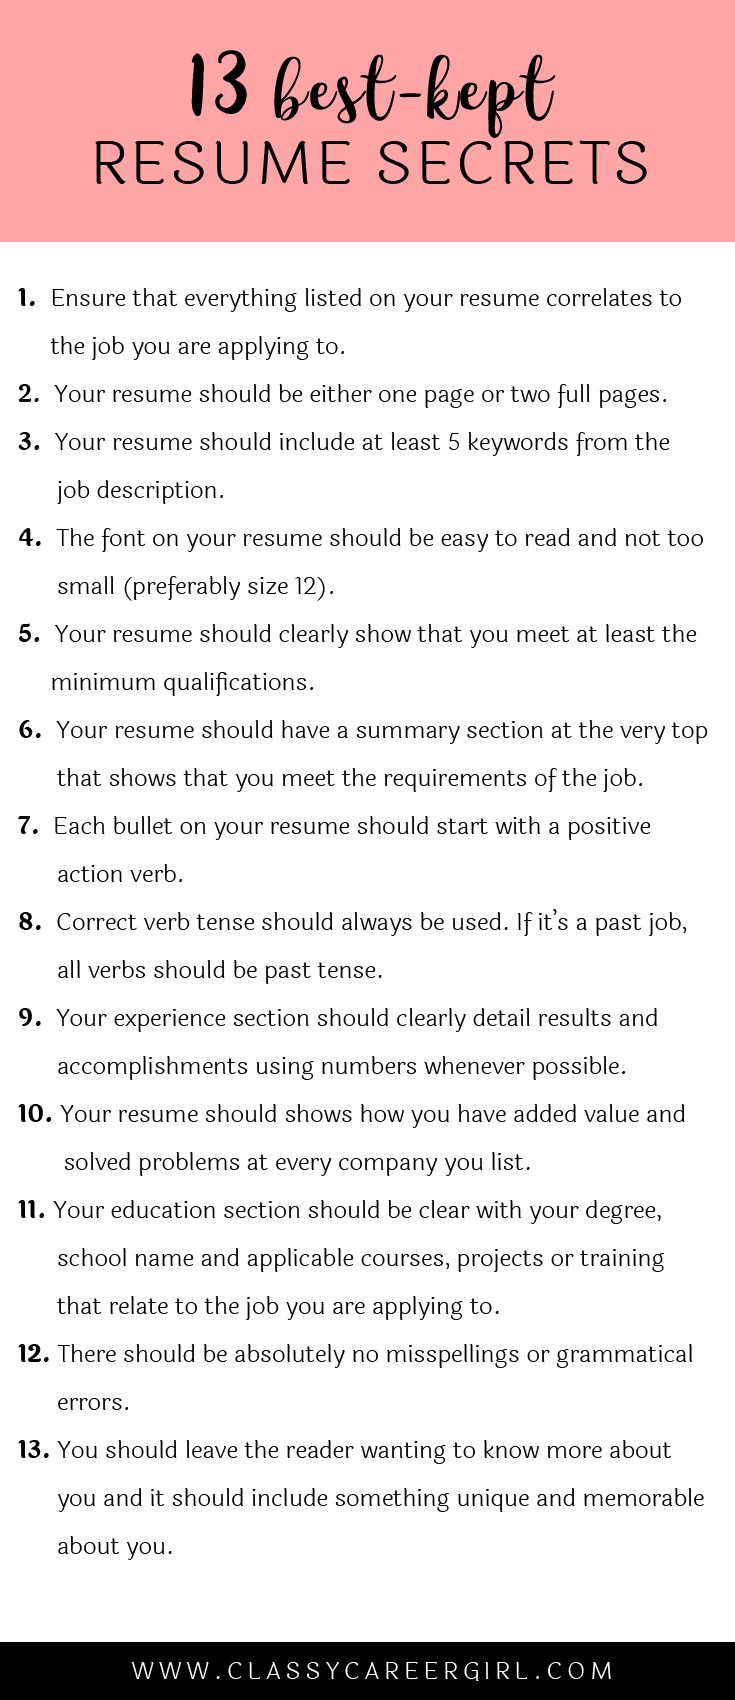 Opposenewapstandardsus  Splendid  Ideas About Resume On Pinterest  Cv Format Resume Cv And  With Luxury Some Hiring Managers Will Toss Your Resume Out If You Dont Know These  With Agreeable Administration Resume Also Job Application Resume In Addition Resume Summary Sample And Make A Resume For Free Online As Well As Good Objective Statements For Resume Additionally Usajobs Resume Format From Pinterestcom With Opposenewapstandardsus  Luxury  Ideas About Resume On Pinterest  Cv Format Resume Cv And  With Agreeable Some Hiring Managers Will Toss Your Resume Out If You Dont Know These  And Splendid Administration Resume Also Job Application Resume In Addition Resume Summary Sample From Pinterestcom